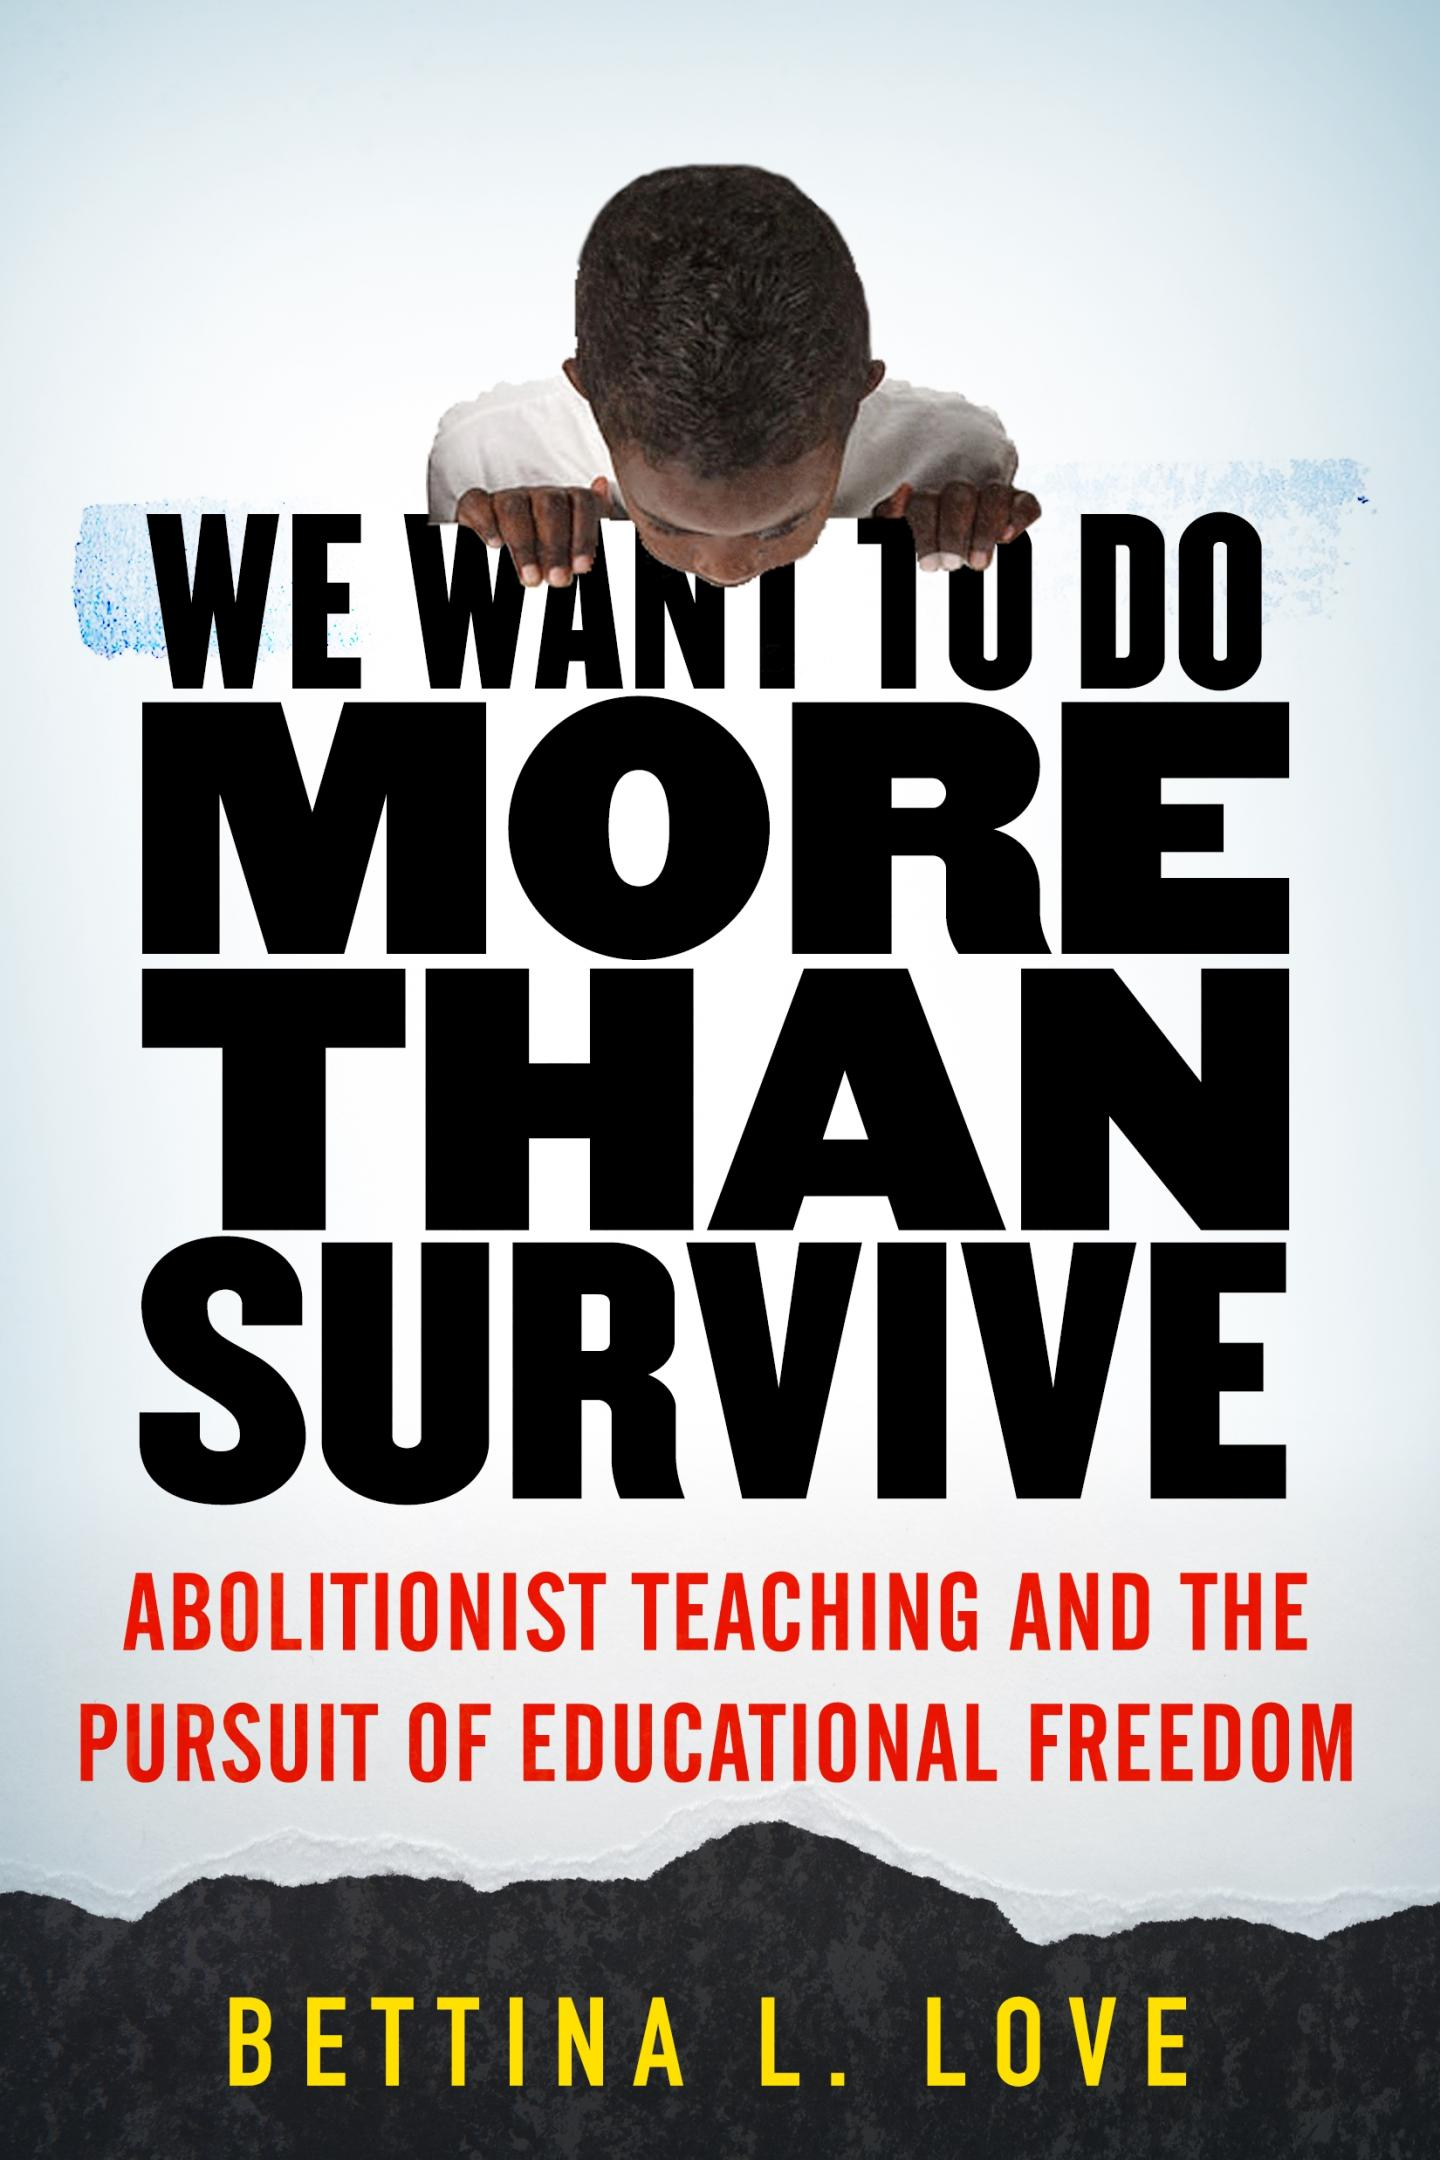 Bettina L. Love, We Want to Do More than Survive, 2020, book cover